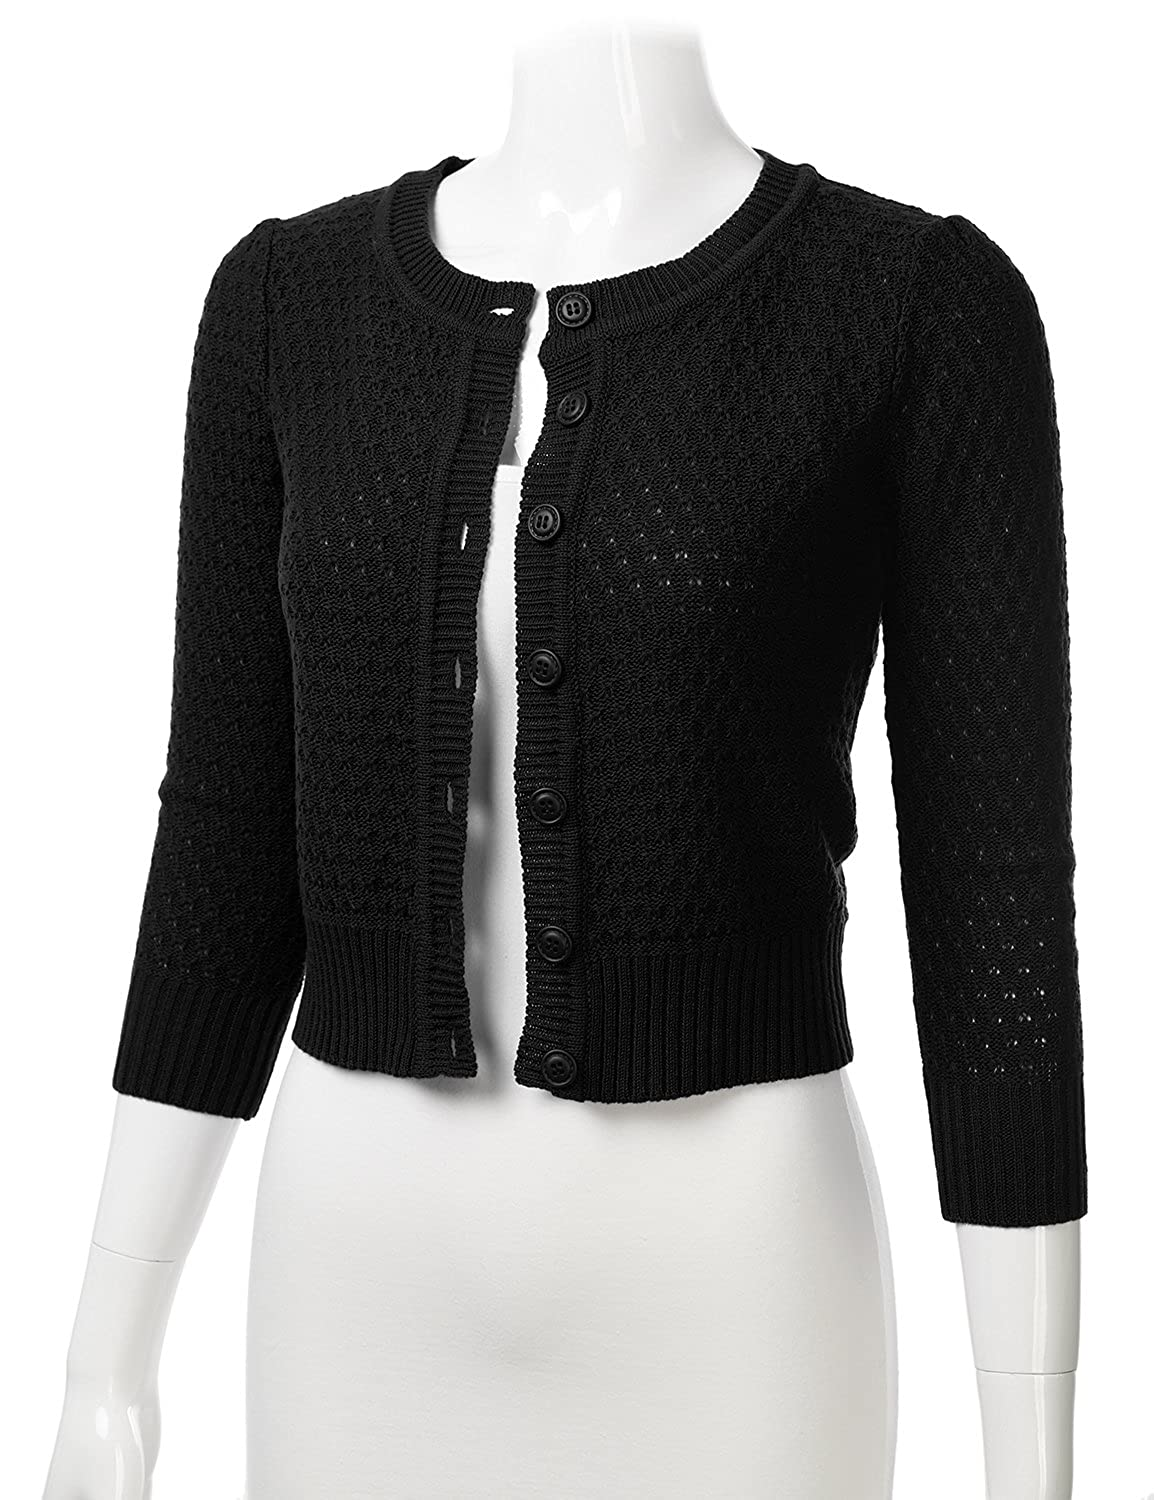 5a3905a5099 FLORIA Women s Button Down 3 4 Sleeve Crew Neck Cotton Knit Cropped  Cardigan Sweater (S-3X) at Amazon Women s Clothing store